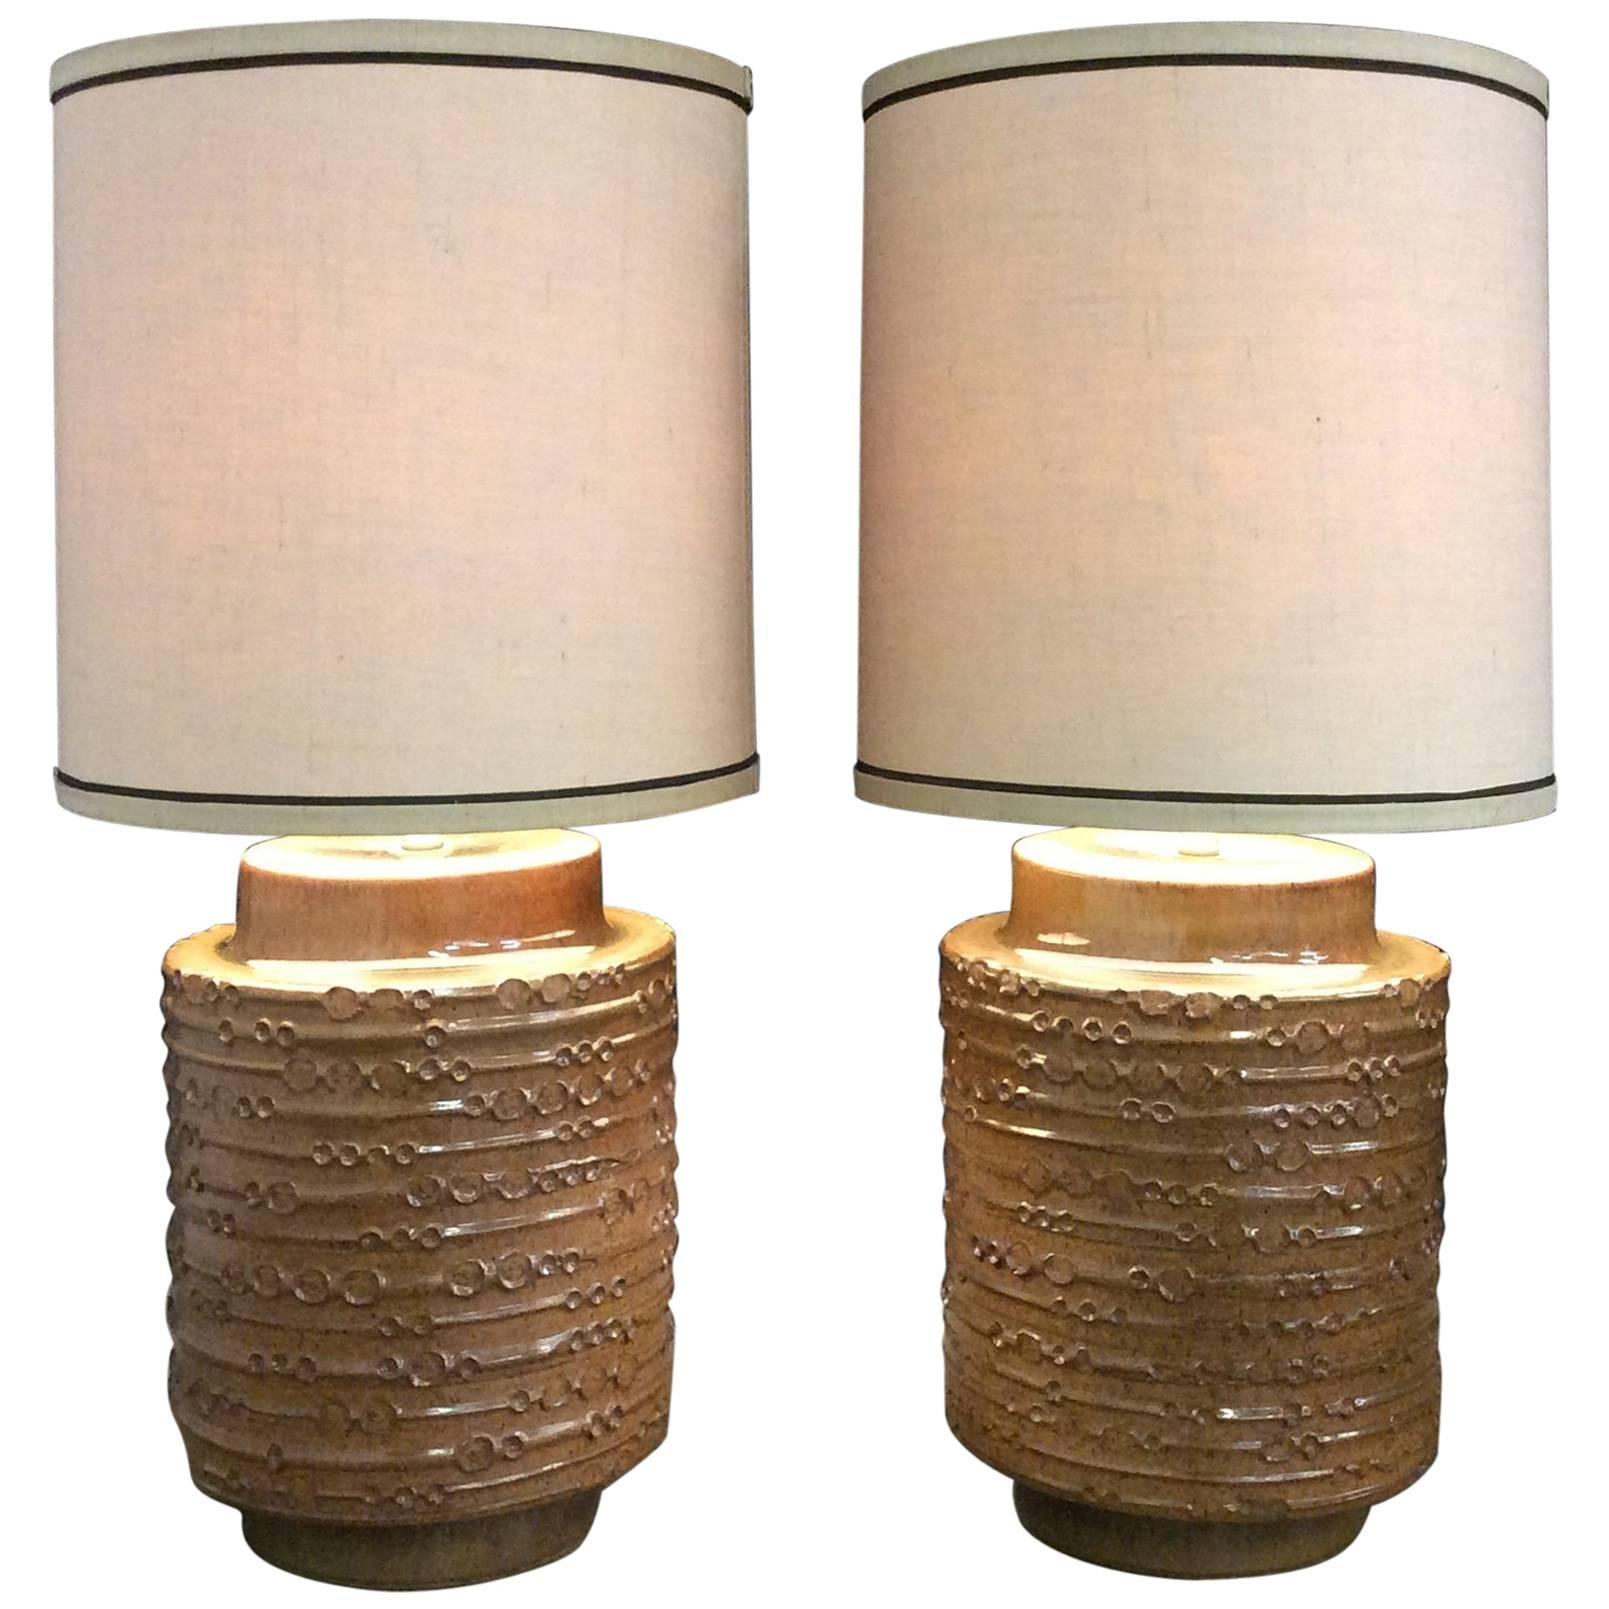 Charmant Two David Cressey Mid Century Modern Extra Large Ceramic Table Lamps For  Sale